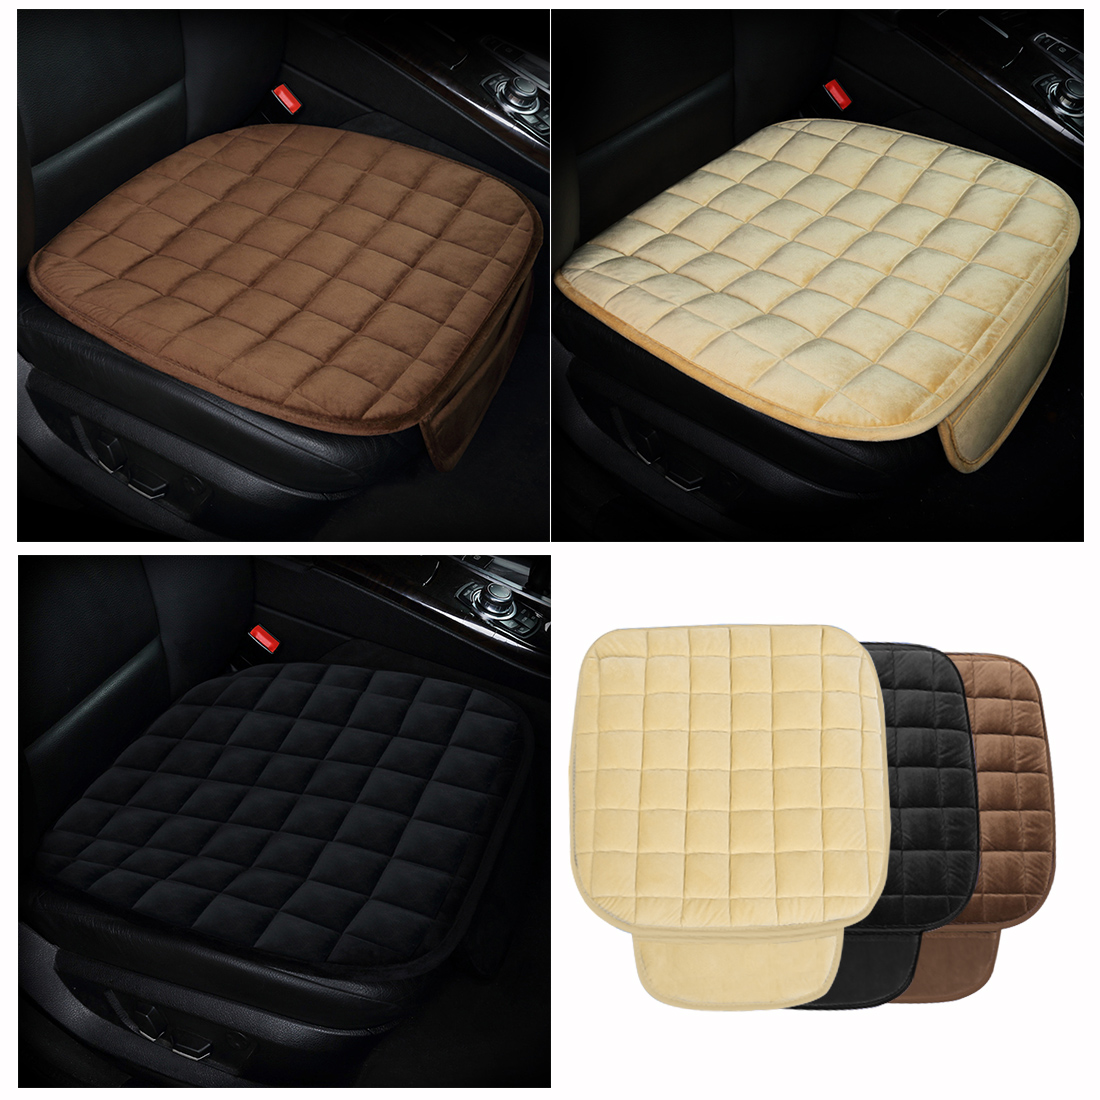 Dewtreetali Velvet Car <font><b>Seat</b></font> <font><b>Covers</b></font> Front <font><b>Seat</b></font> Protector Pad Breathable Winter Warm Cushion for <font><b>Peugeot</b></font> <font><b>206</b></font> BMW Ford Focus 2e46 image